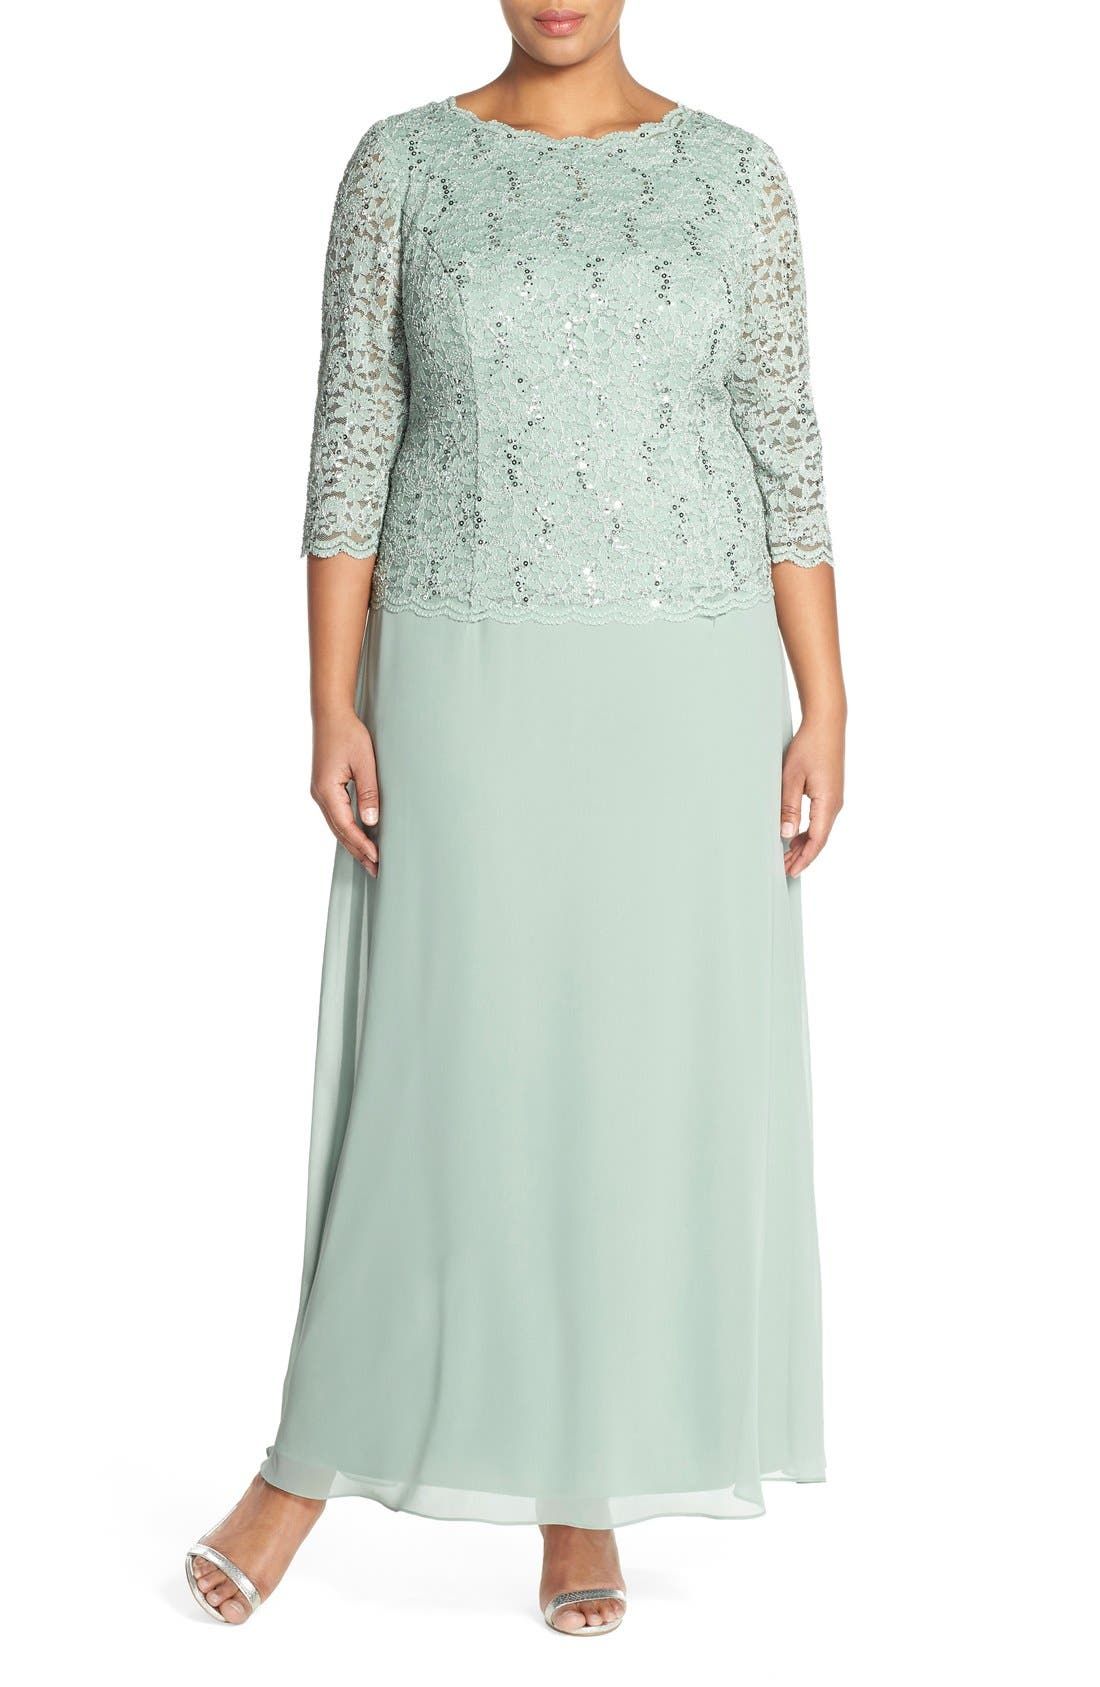 Alternate Image 1 Selected - Alex Evenings Embellished Lace & Chiffon Gown (Plus Size)